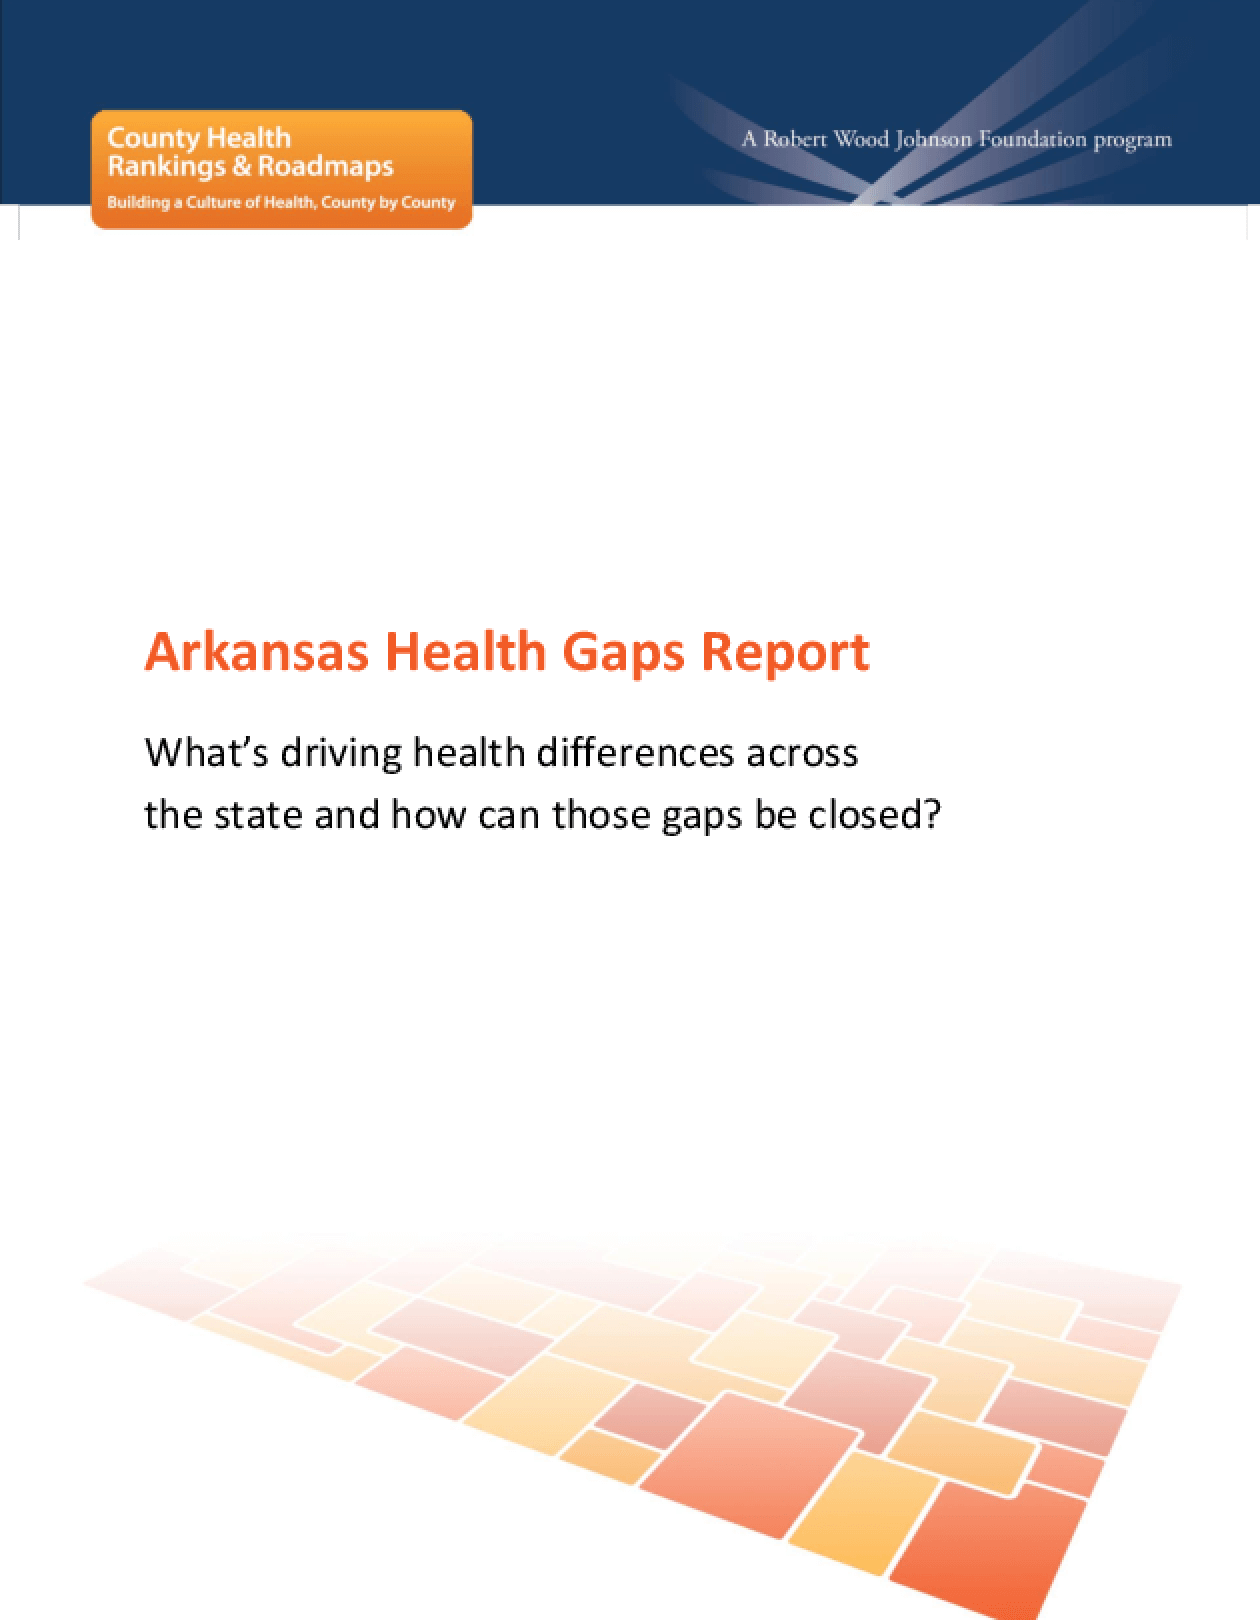 Arkansas Health Gaps Report: What's Driving Health Differences Across the State and How Can Those Gaps Be Closed?